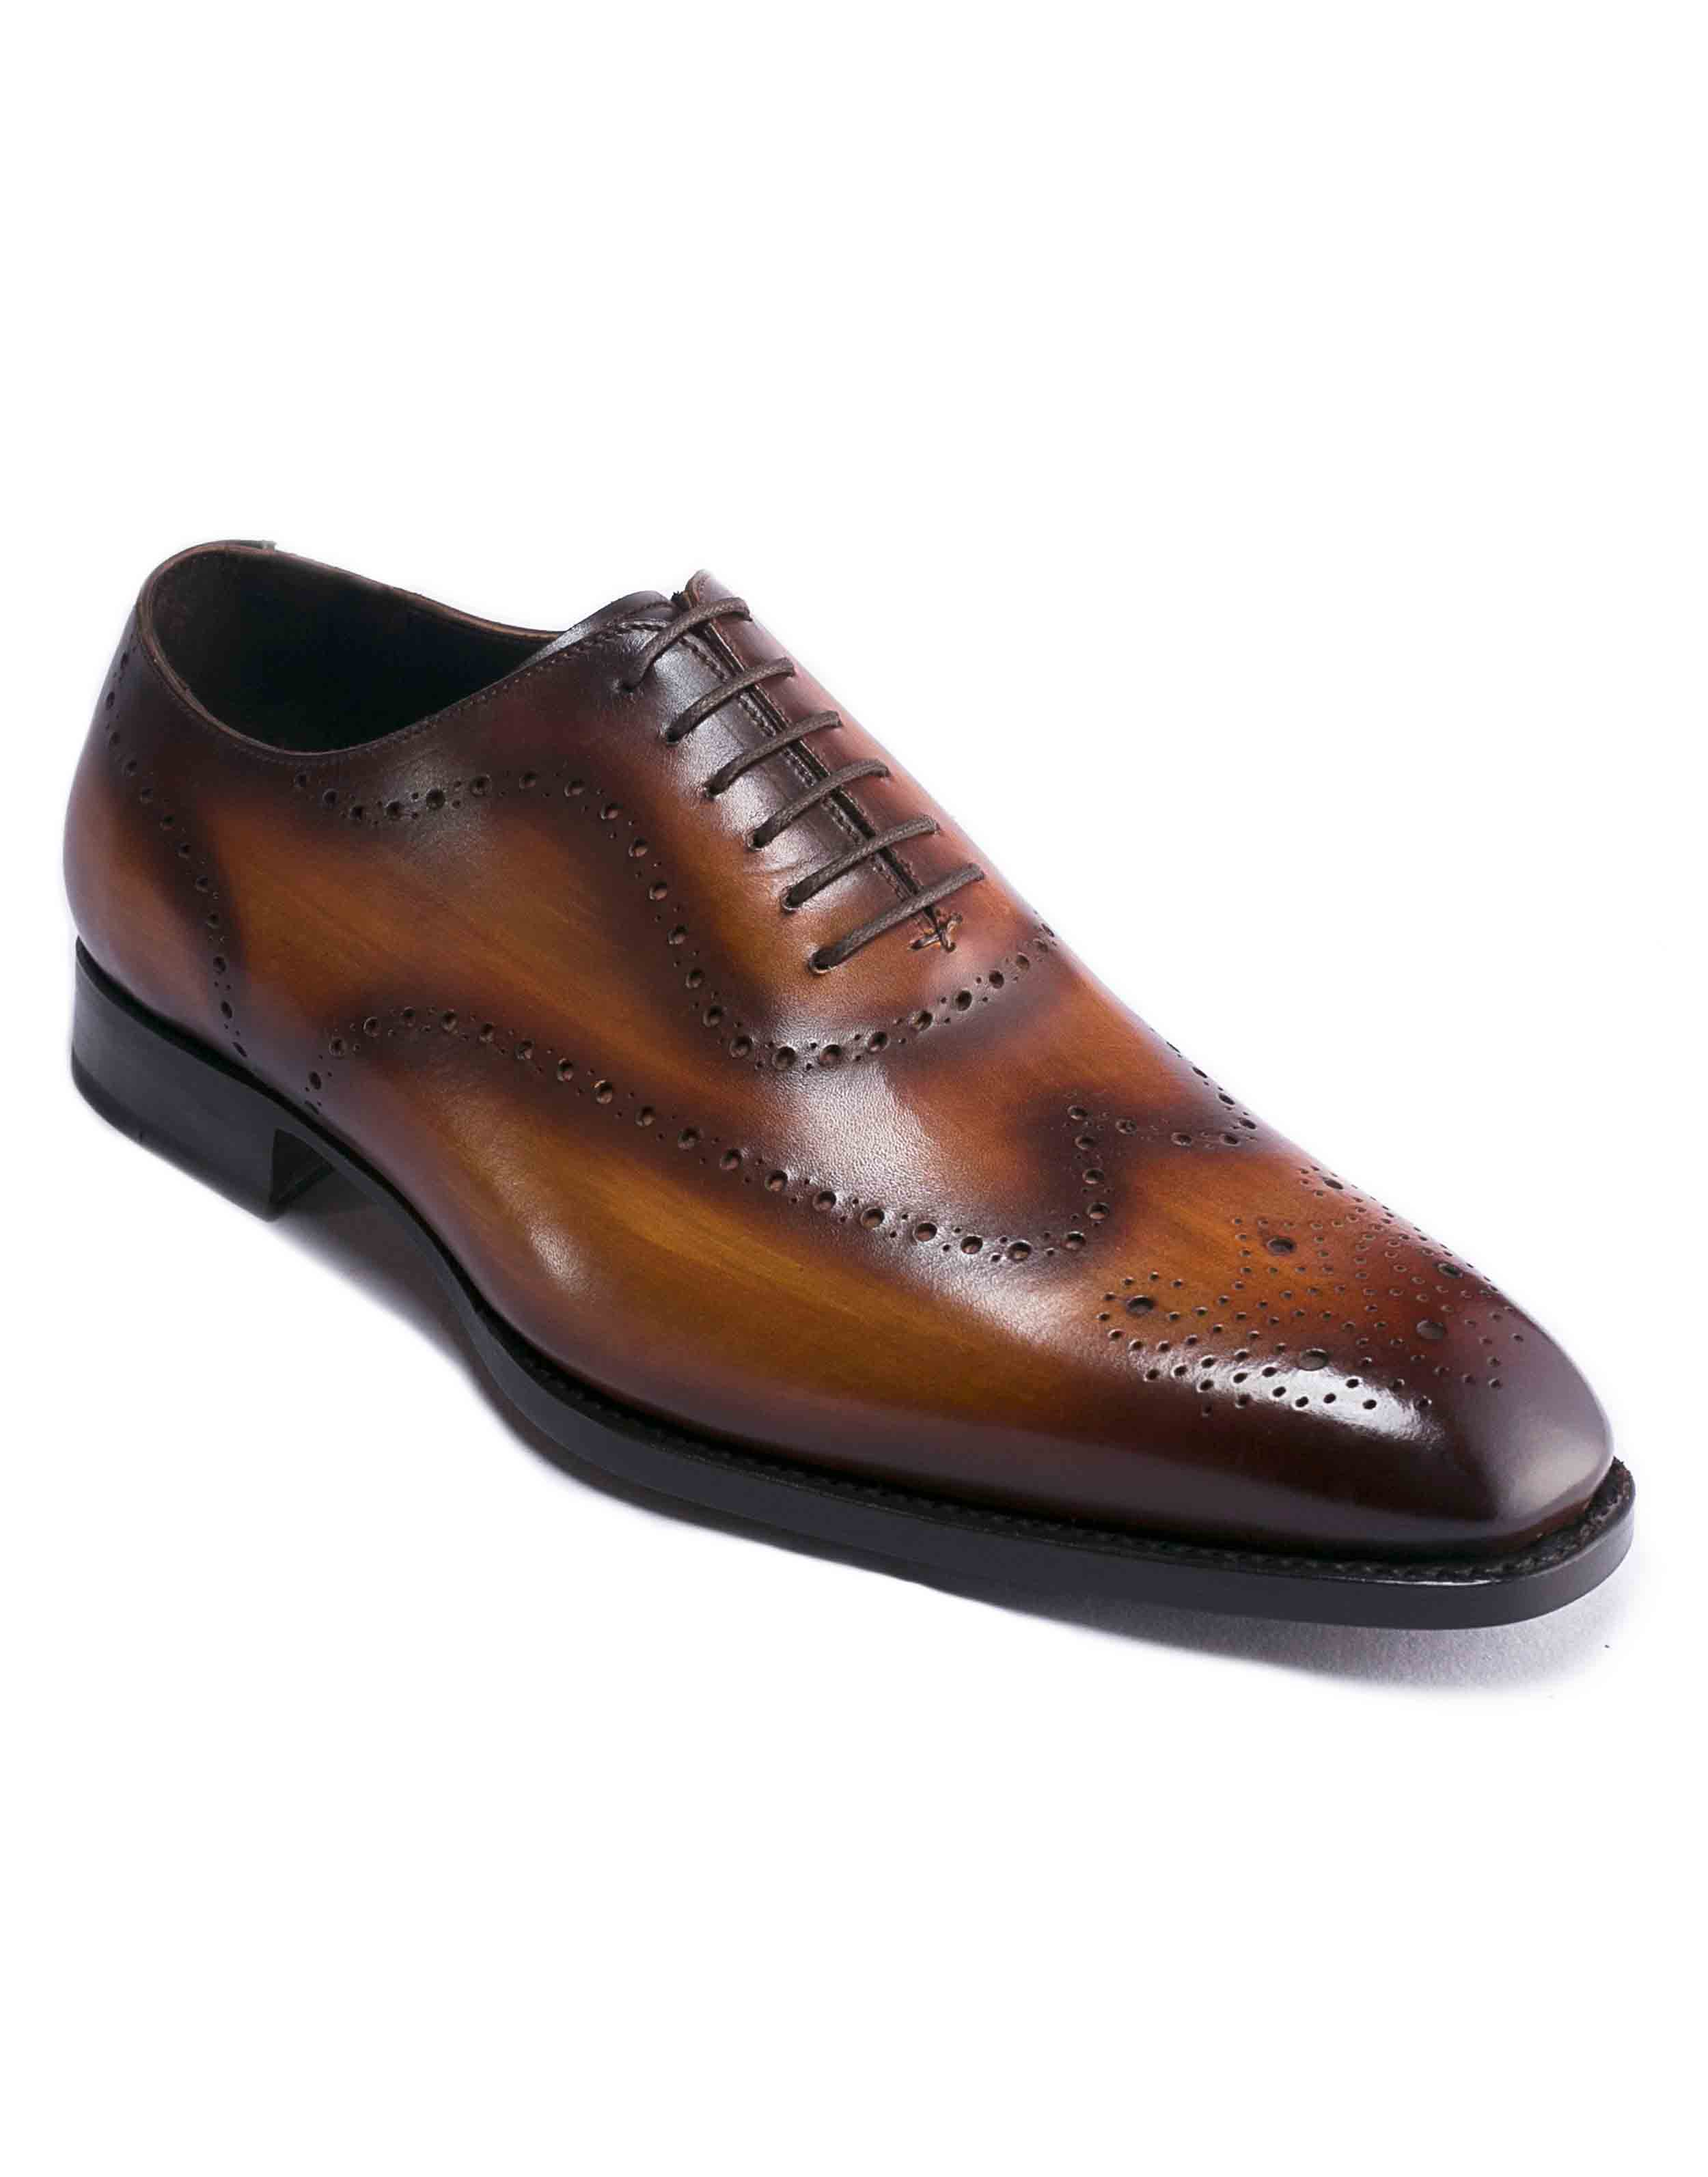 DARK BROWN PATINA BROGUE OXFORD2